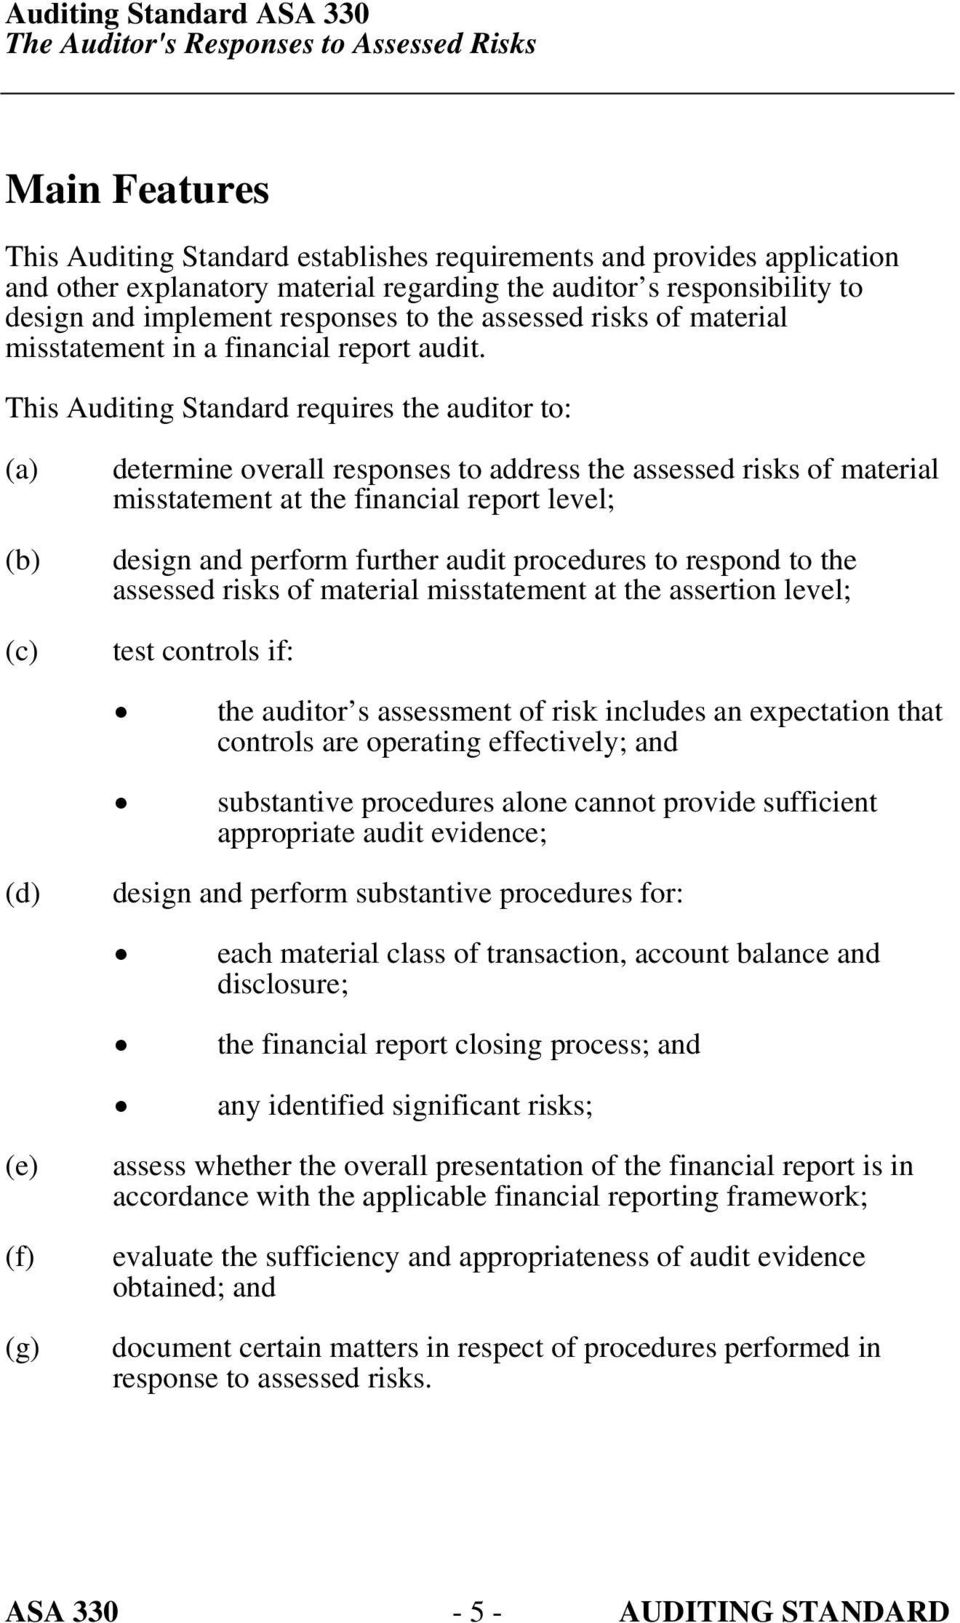 This Auditing Standard requires the auditor to: (a) (b) (c) determine overall responses to address the assessed risks of material misstatement at the financial report level; design and perform